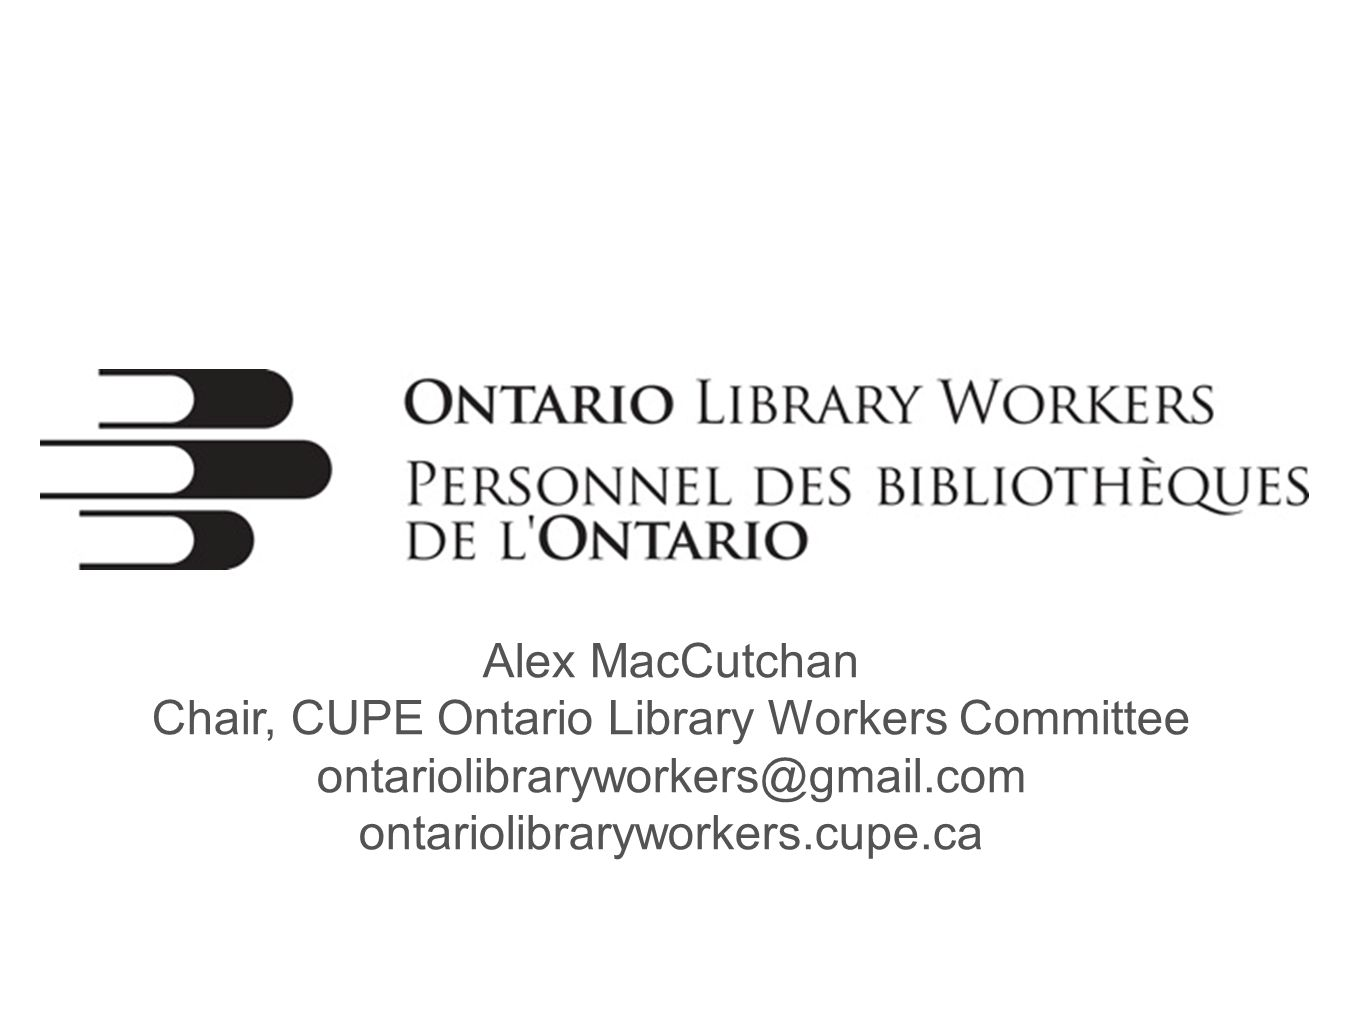 Alex MacCutchan Chair, CUPE Ontario Library Workers Committee ontariolibraryworkers@gmail.com ontariolibraryworkers.cupe.ca